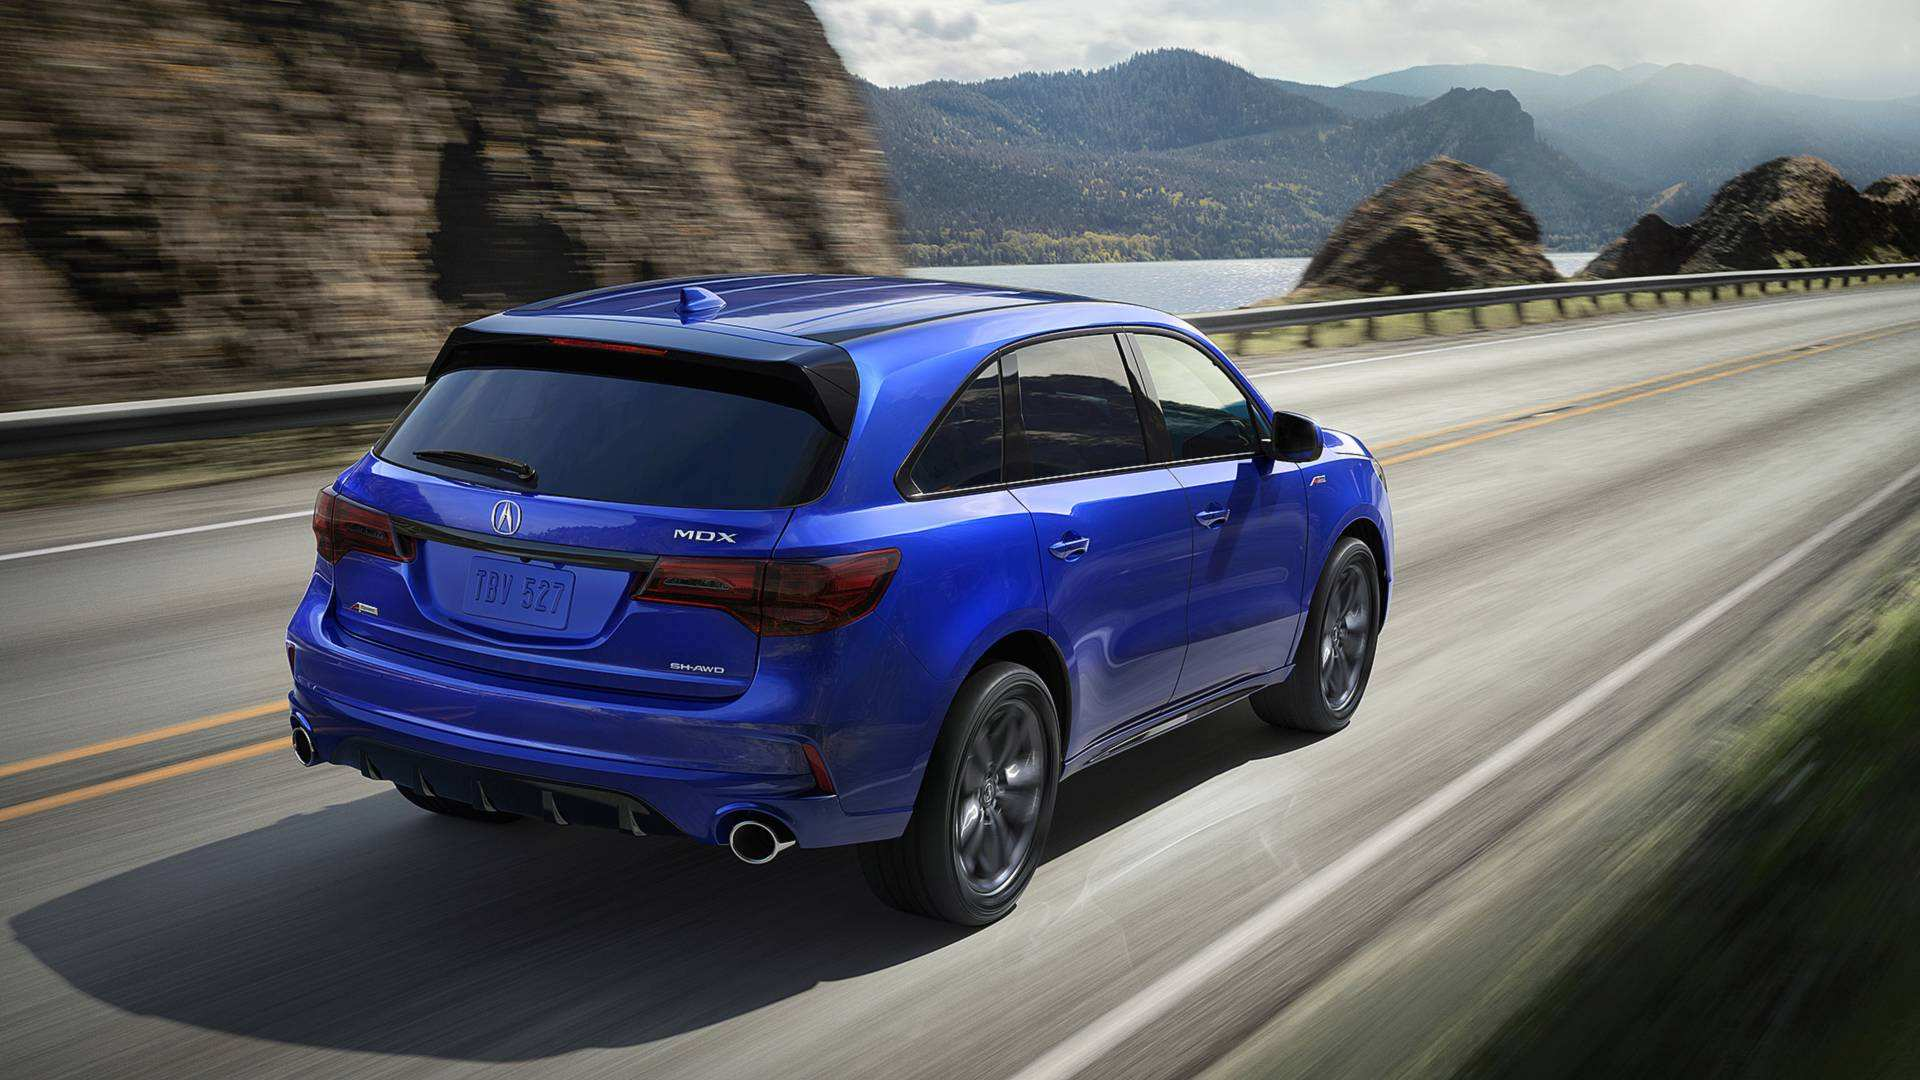 61 The 2020 Acura Mdx Body Change Performance And New Engine